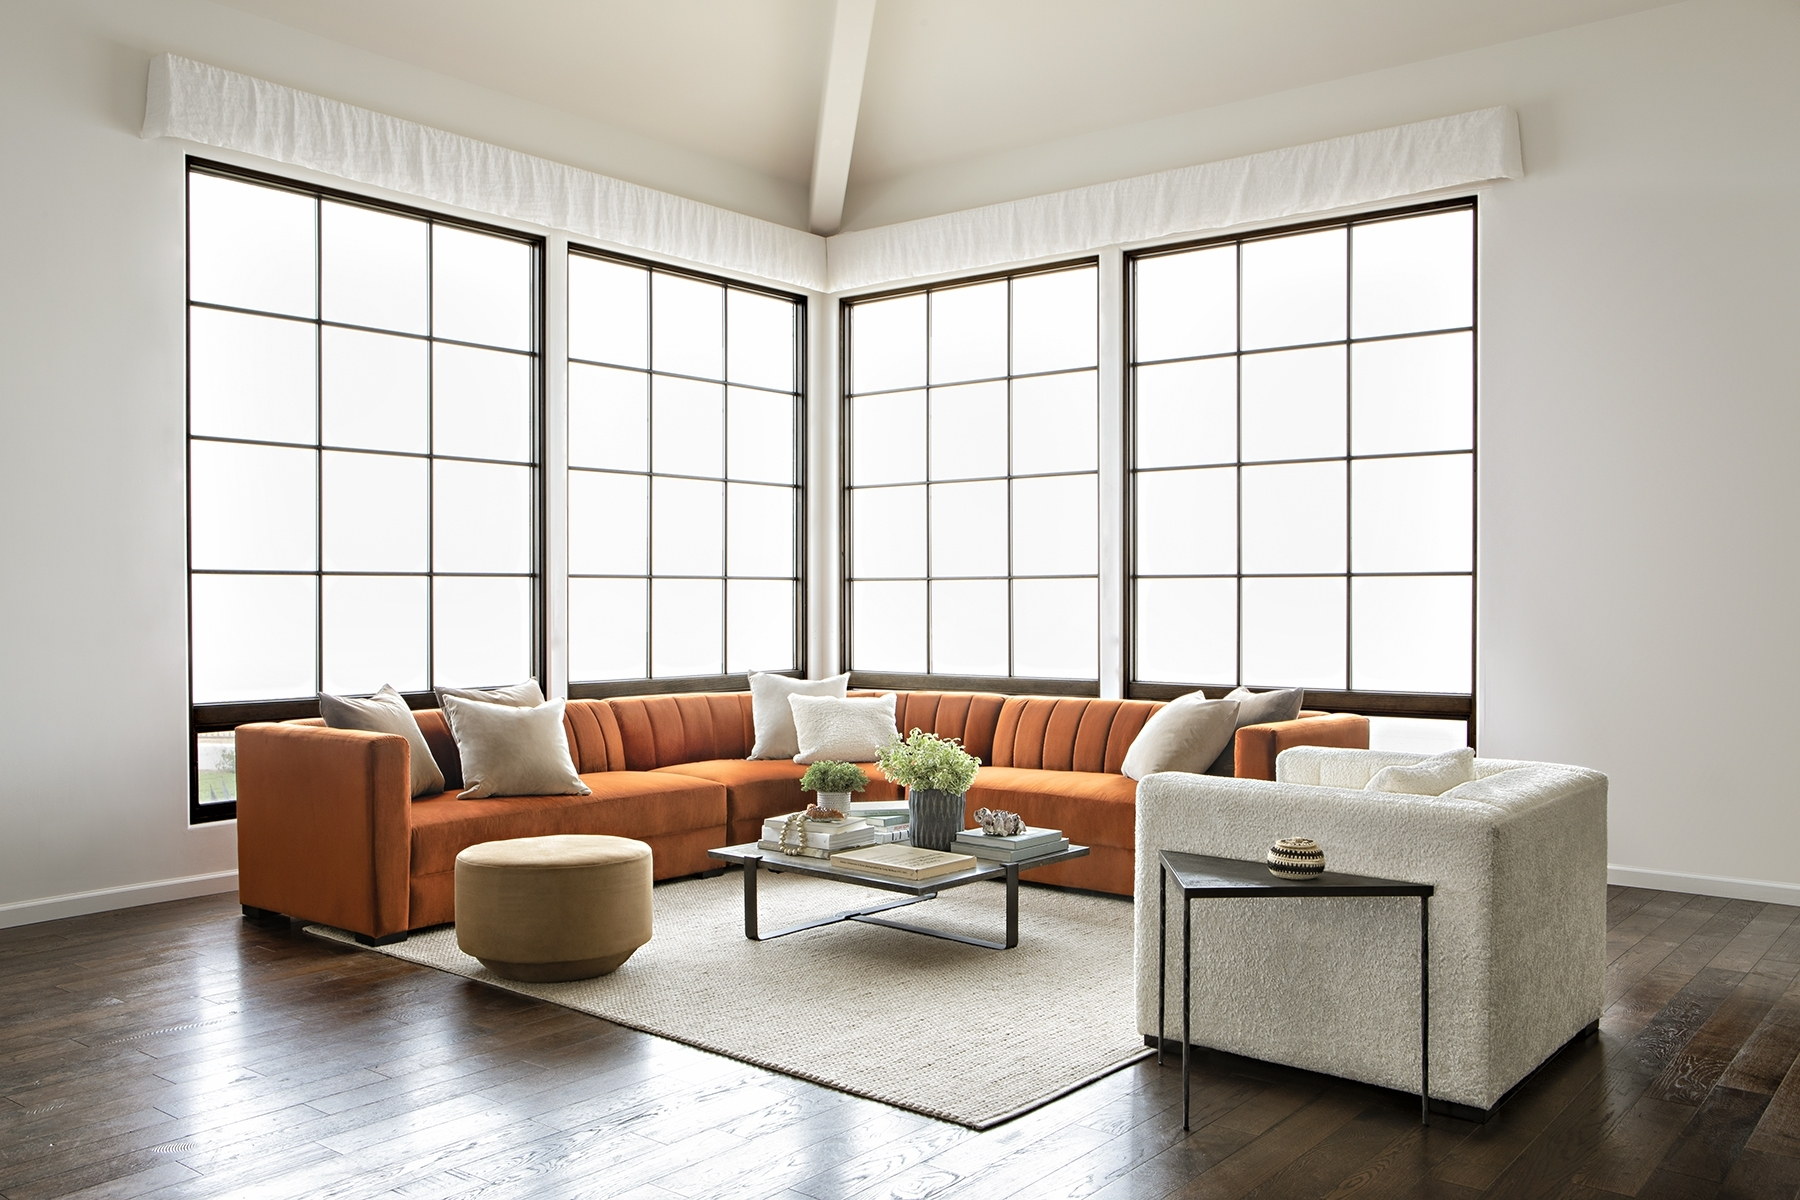 Nate Berkus & Jeremiah Brent's Newest Affordable Collection | Rue Pertaining To Soane 3 Piece Sectionals By Nate Berkus And Jeremiah Brent (Image 5 of 25)